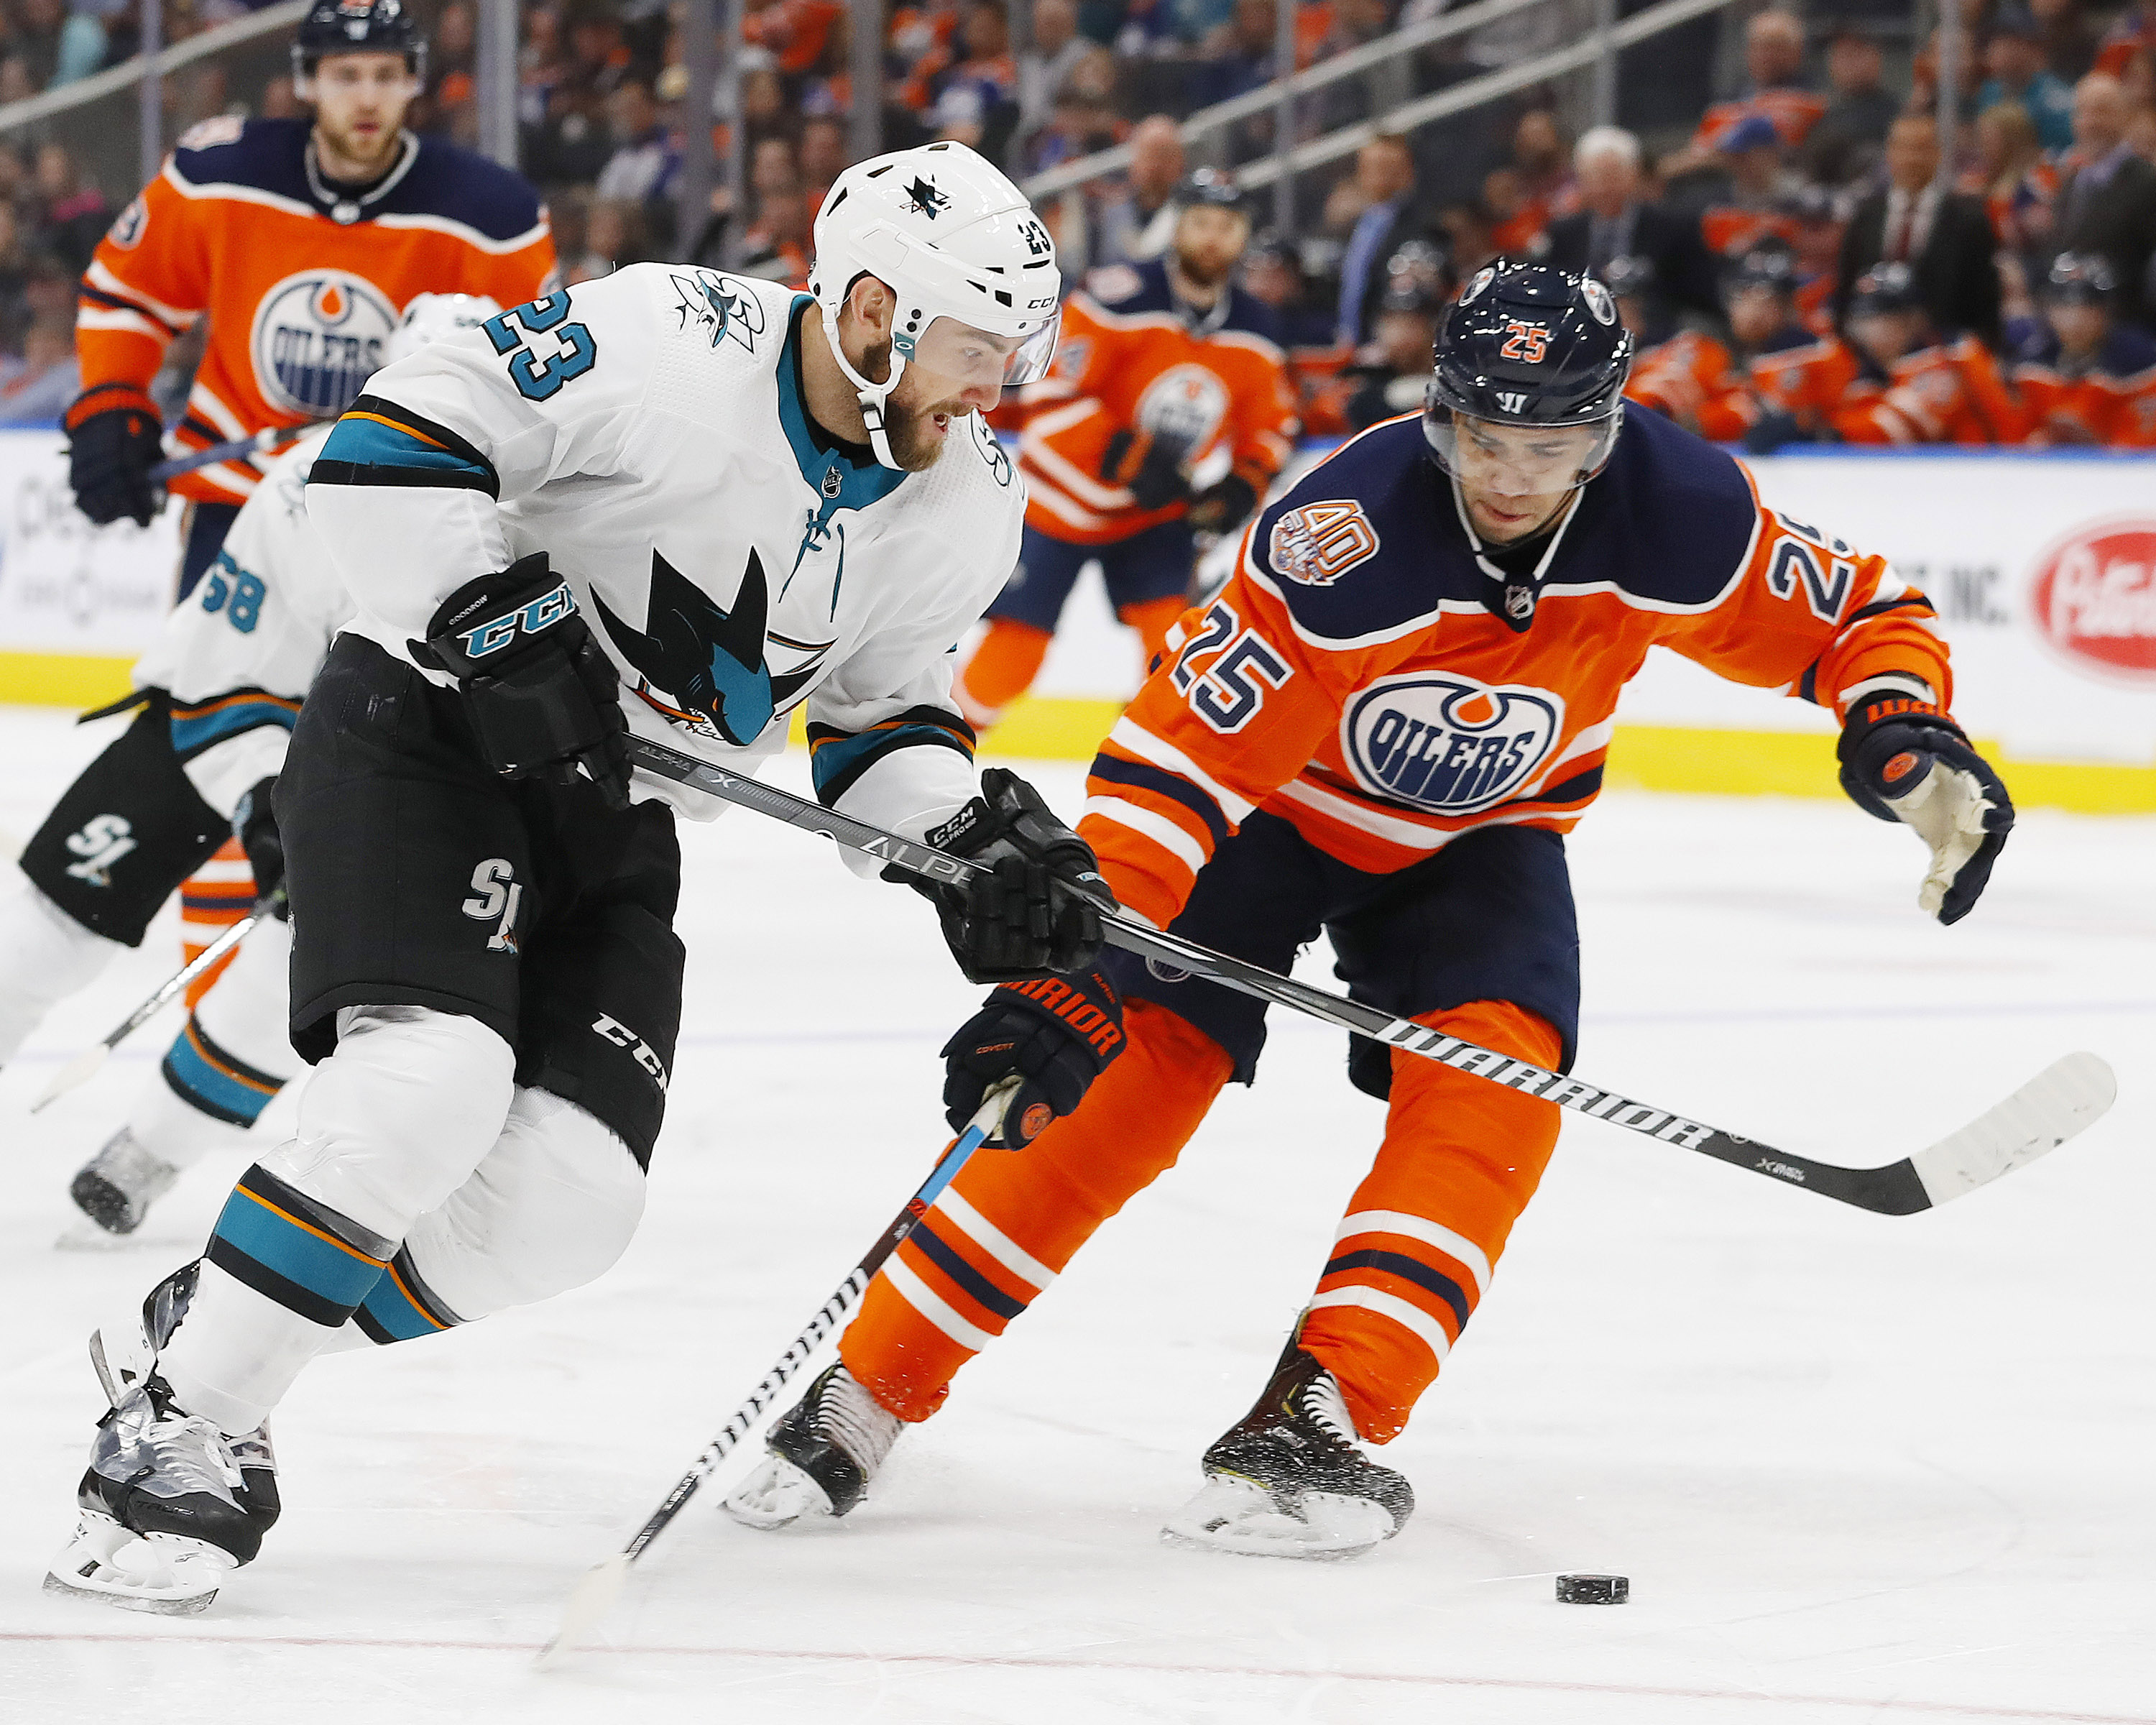 Apr 4, 2019; Edmonton, Alberta, CAN; San Jose Sharks forward Barclay Goodrow (23) and Edmonton Oilers defensemen Darnell Nurse (25) battle for ta loose puck during the second period at Rogers Place.